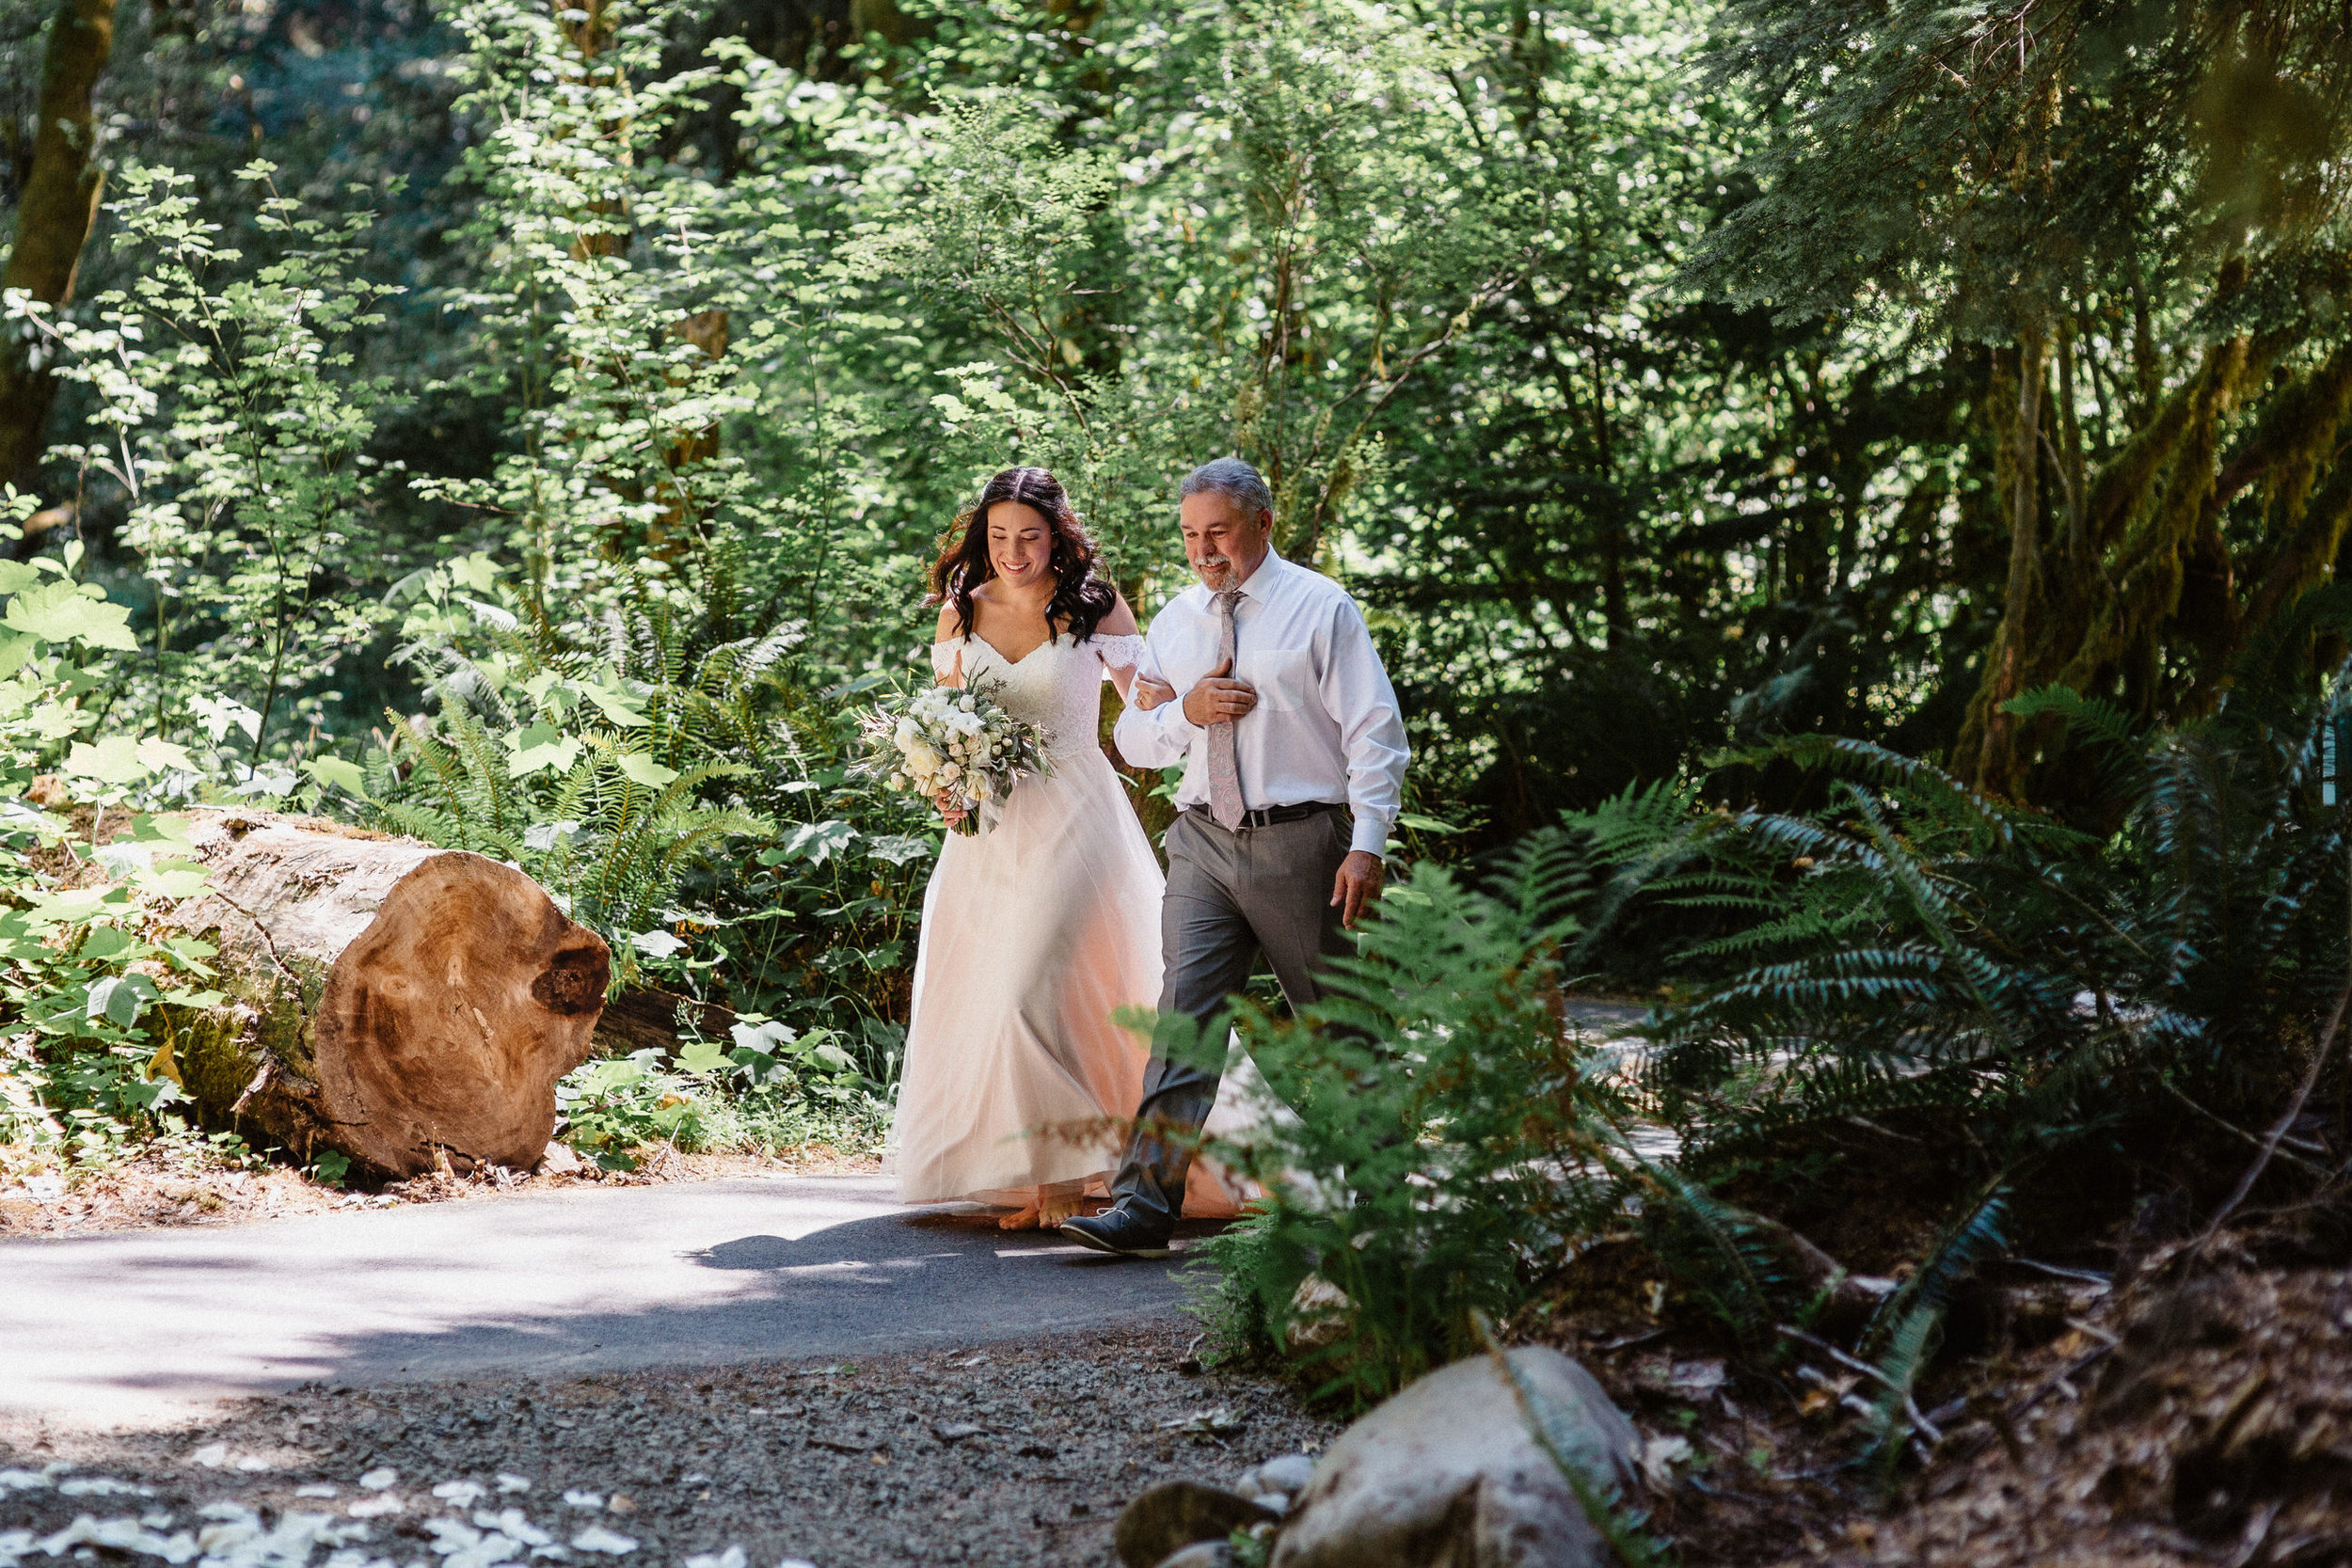 MT Hood Wildwood elopement wedding oregon portland photography0005.JPG